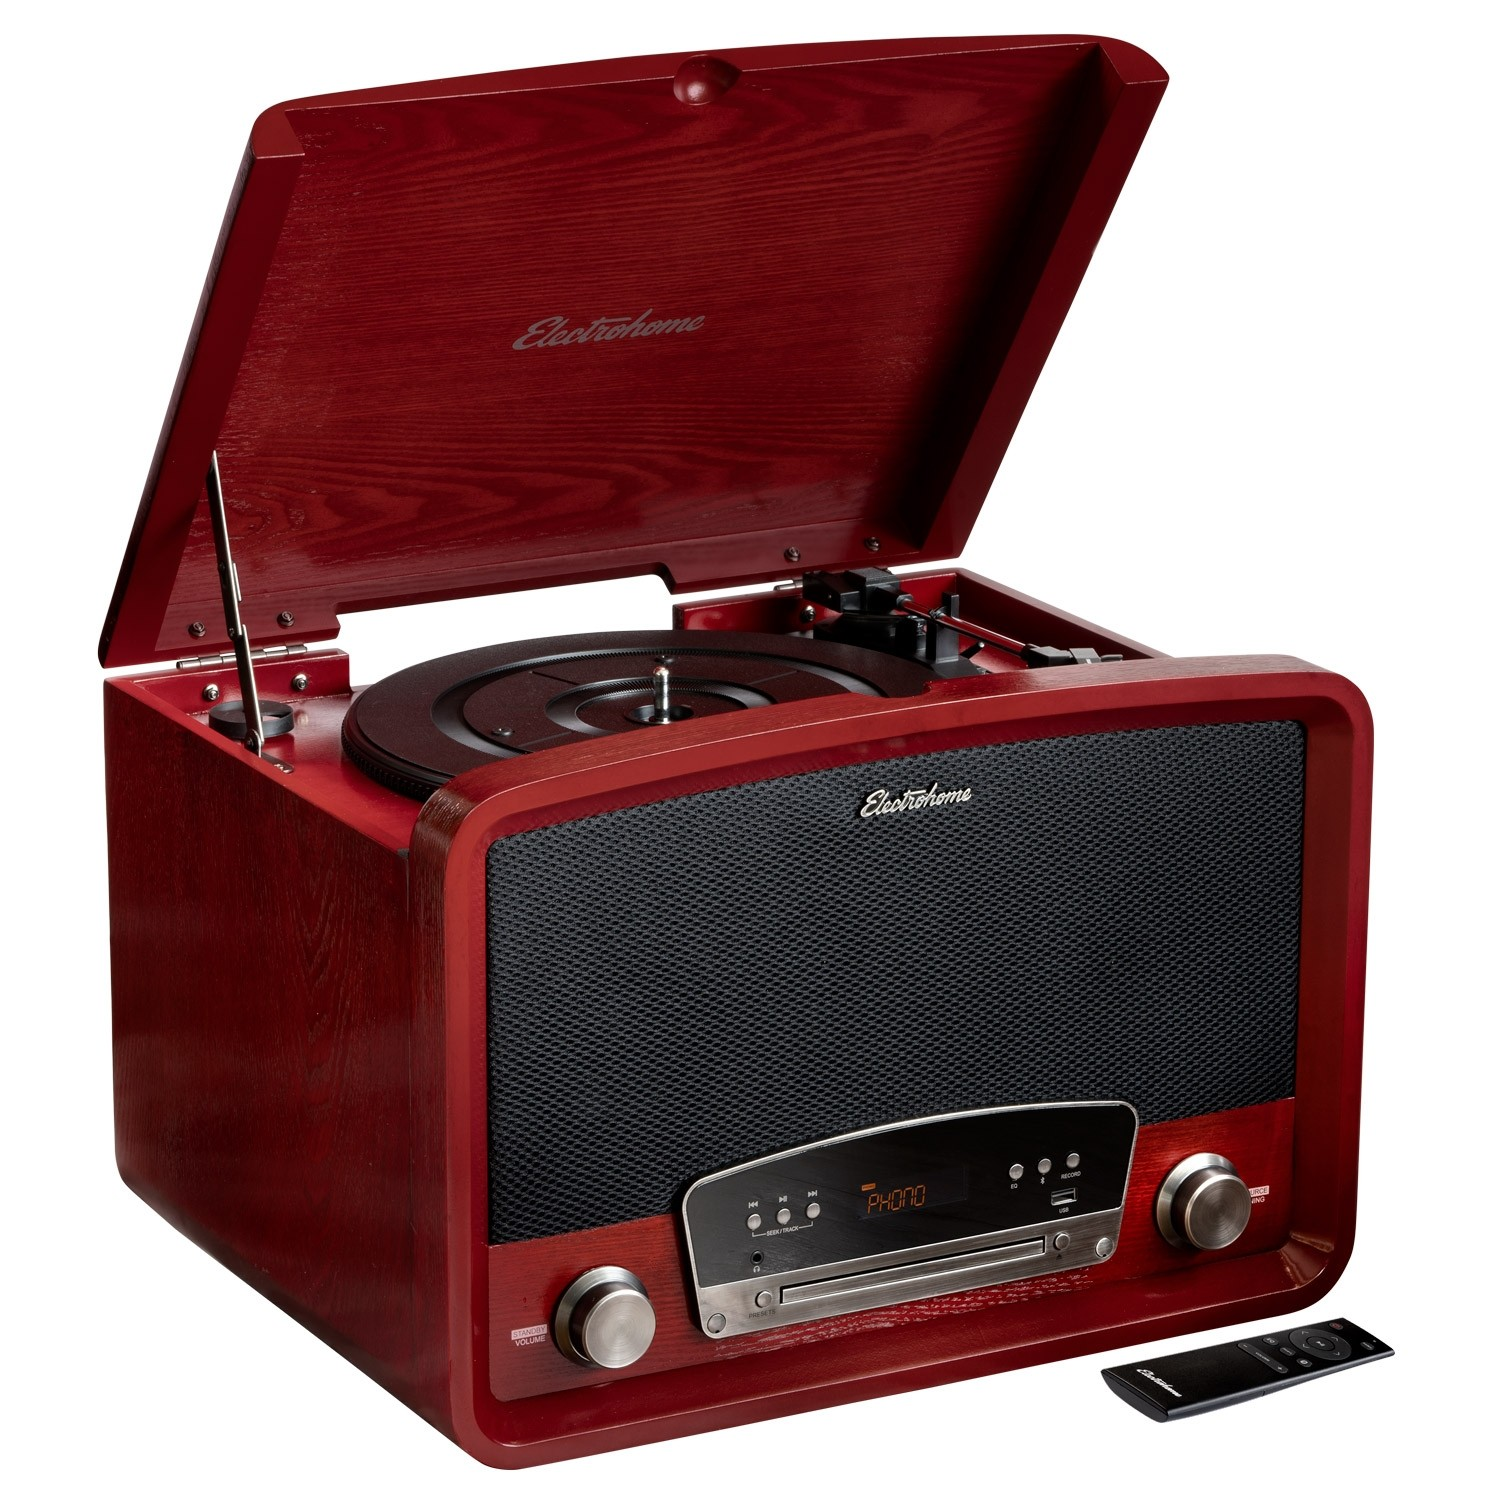 Kingston 7-in-1 Vinyl Record Player - Main Cherry - Alternate 3